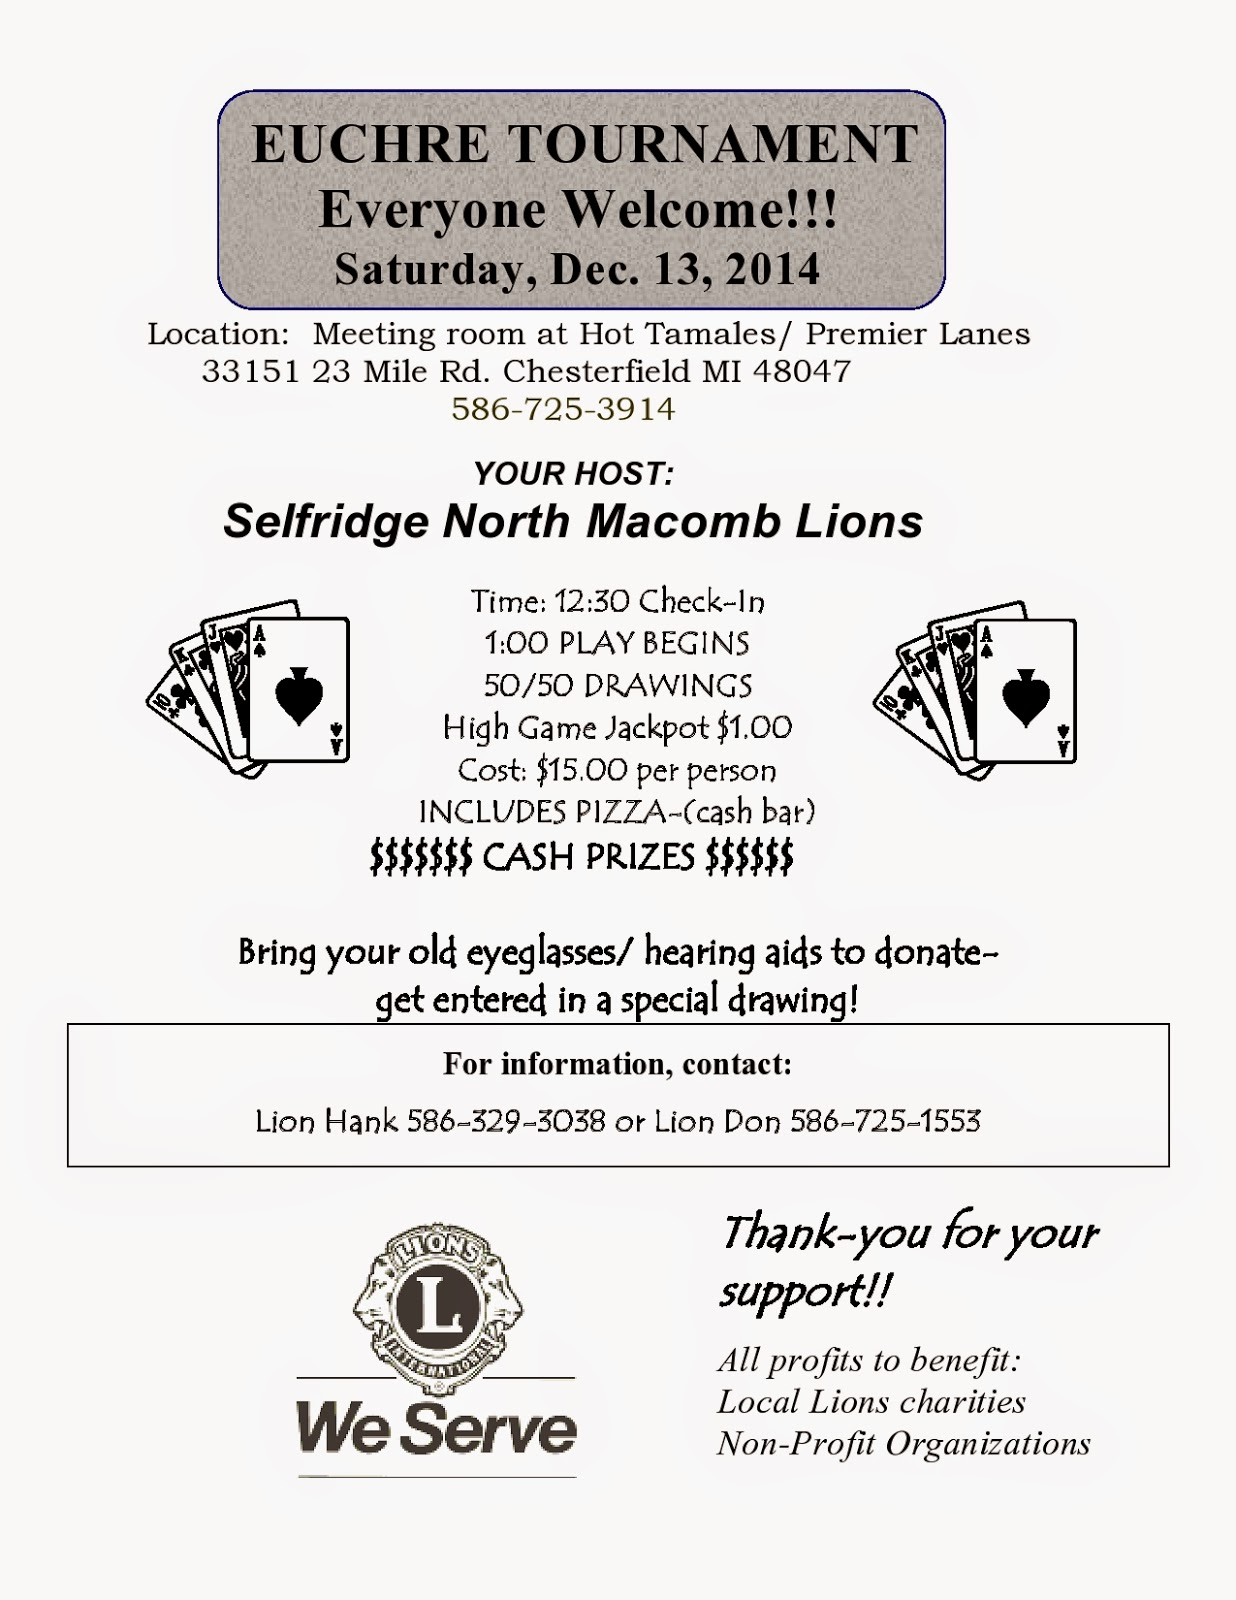 Lions Euchre Tournament Michigan